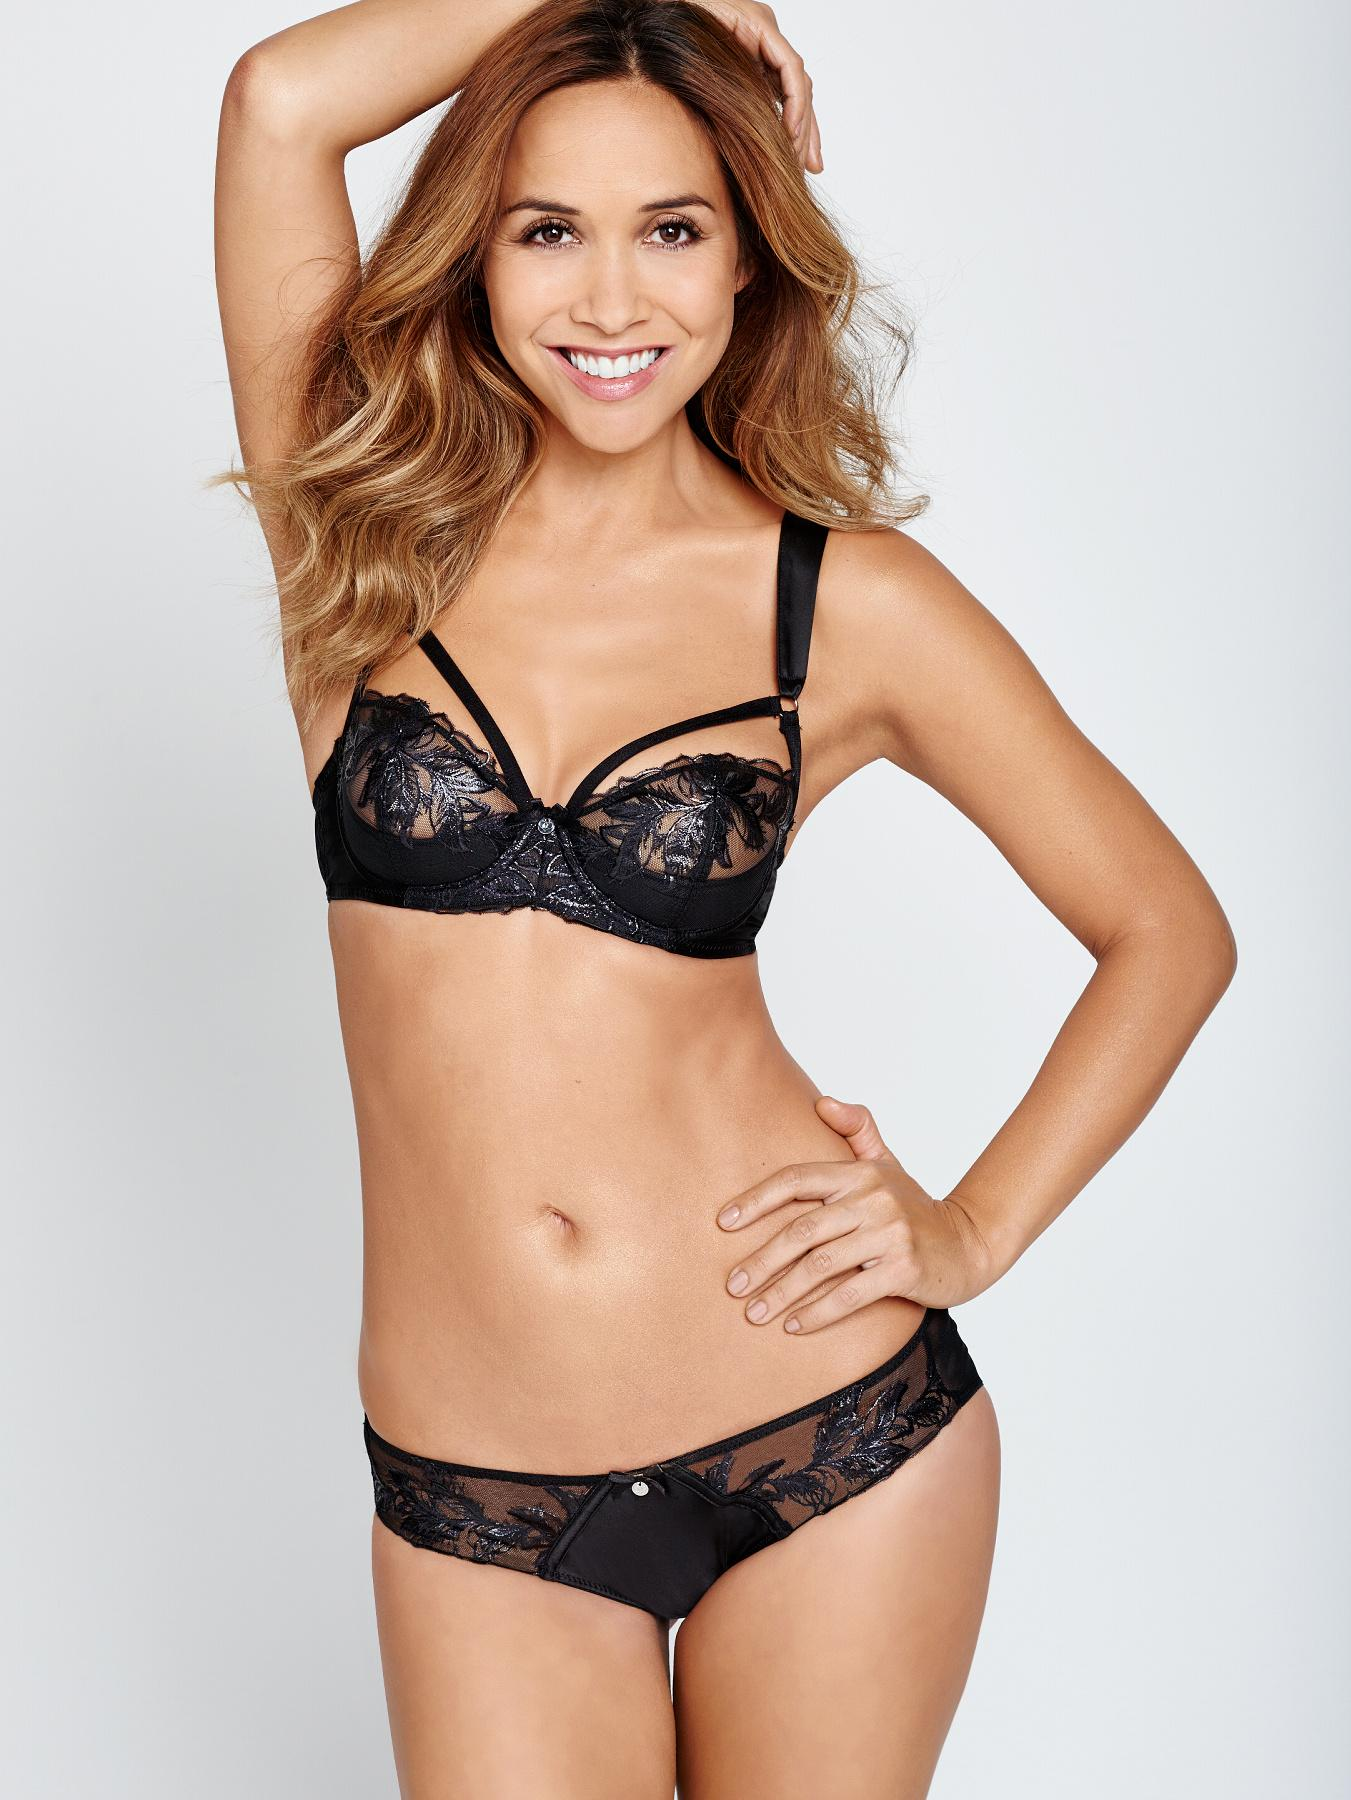 Myleene Klass Feathers Embroidery Plunge Half Padded Bra - Black, Black